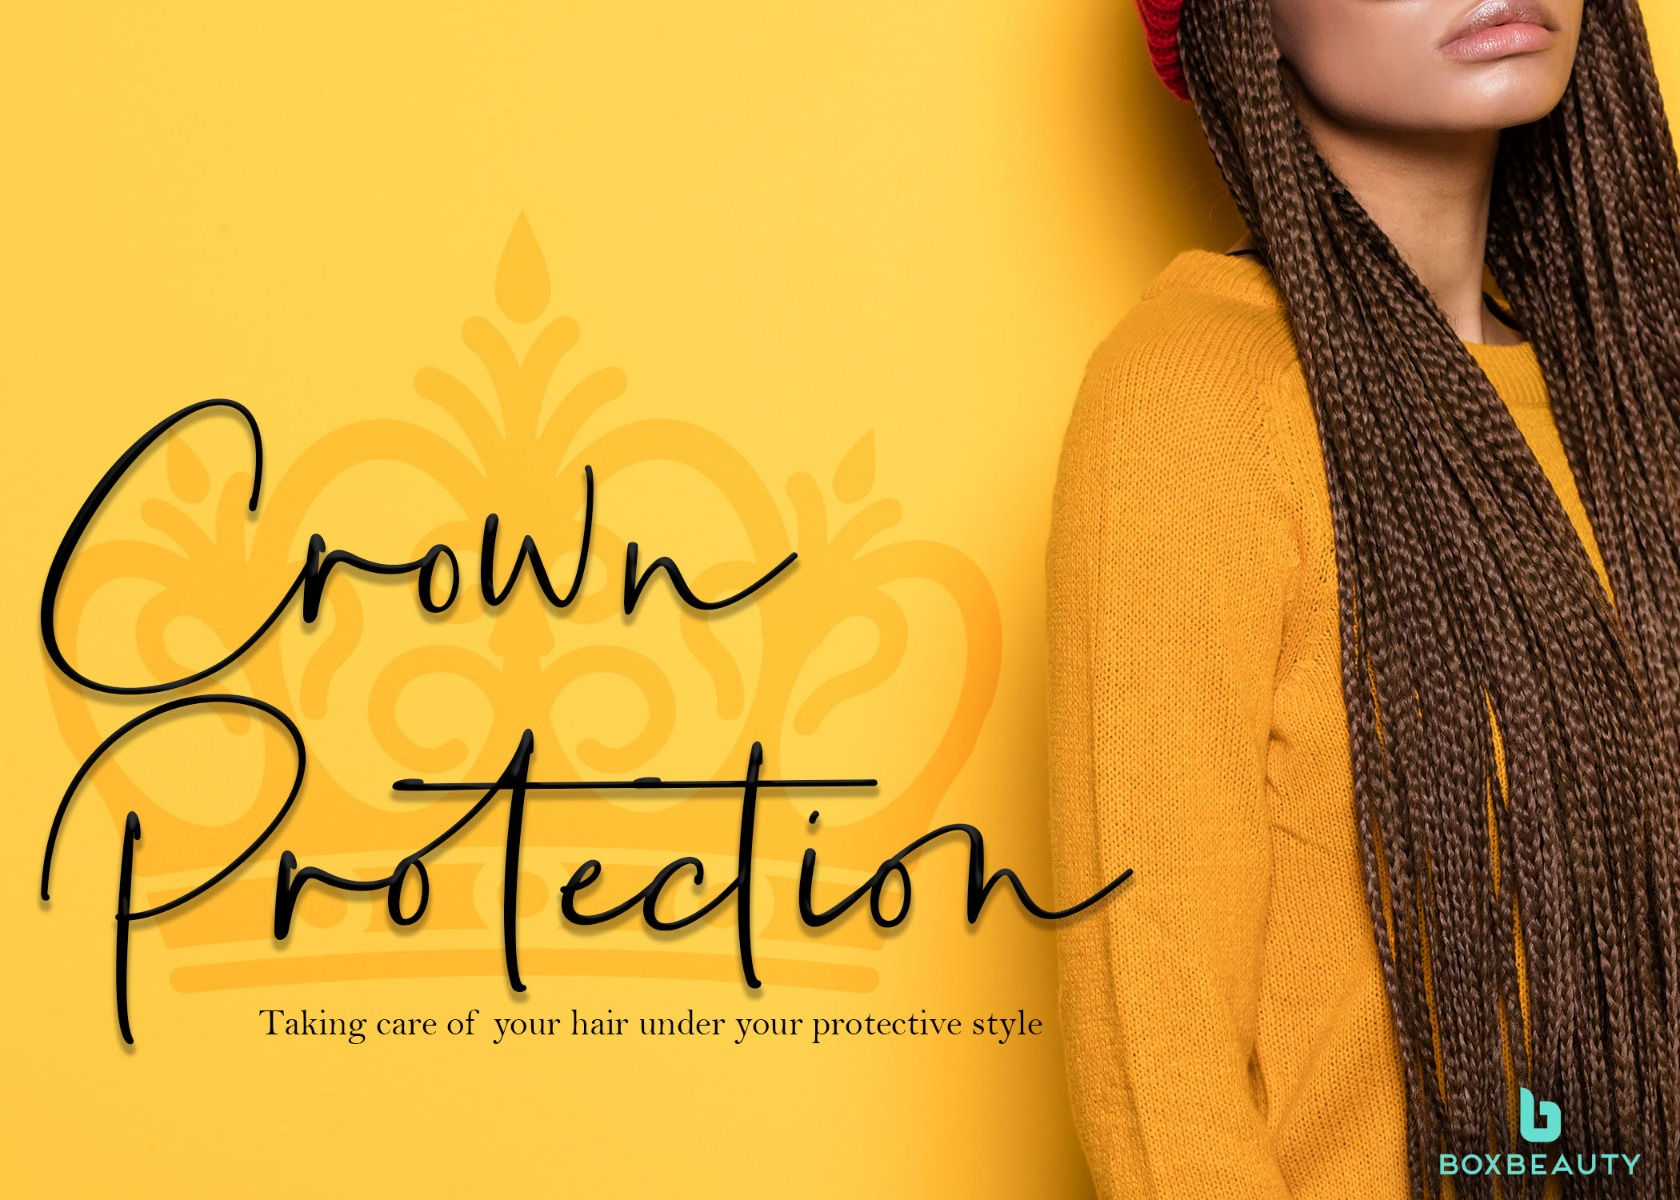 Crown Protection